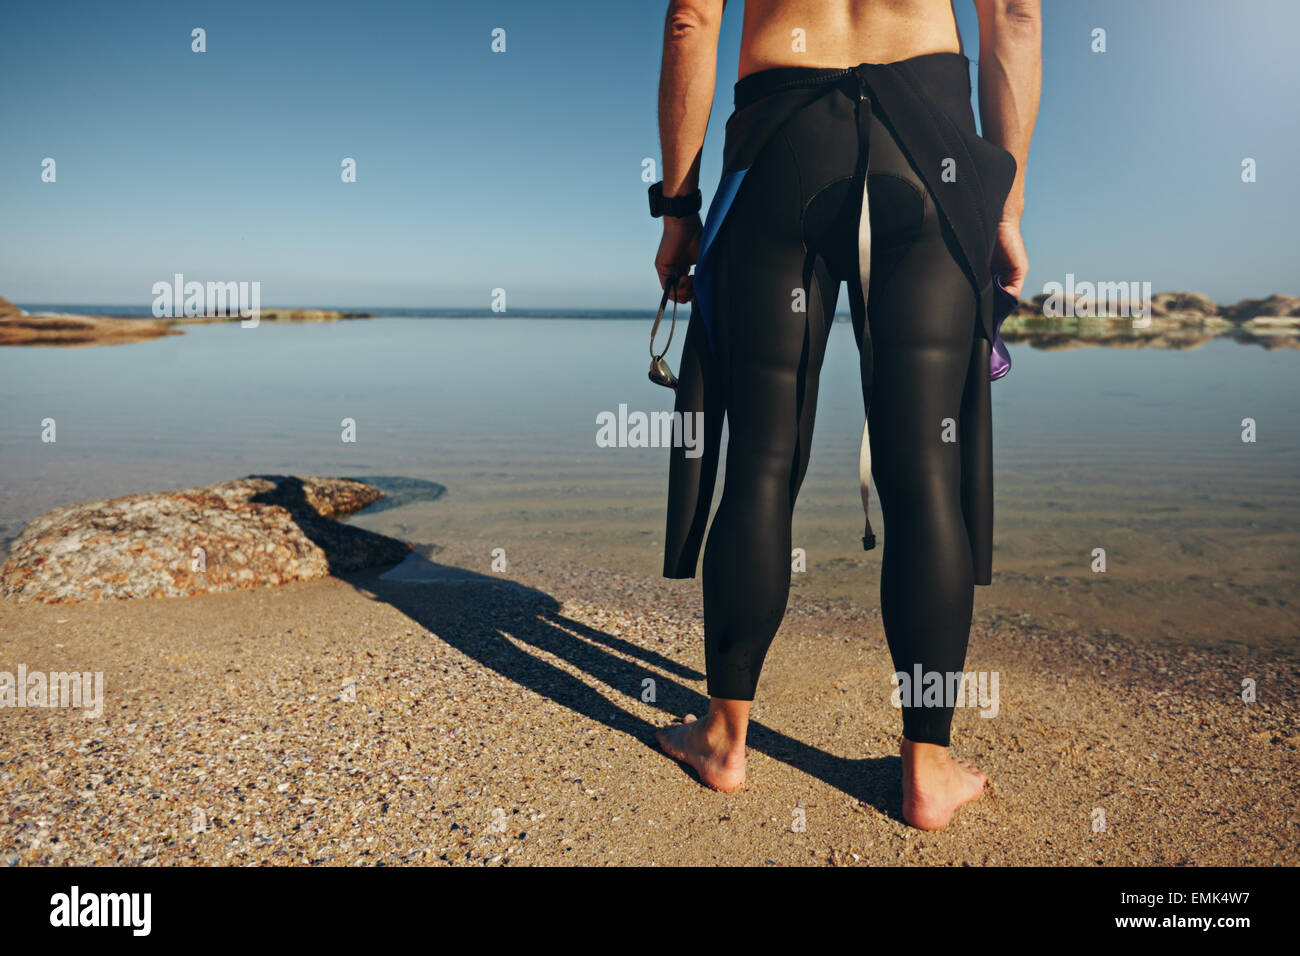 Rear view of man standing on lake wearing wetsuit. Cropped shot of a triathlete getting ready for a race. Stock Photo